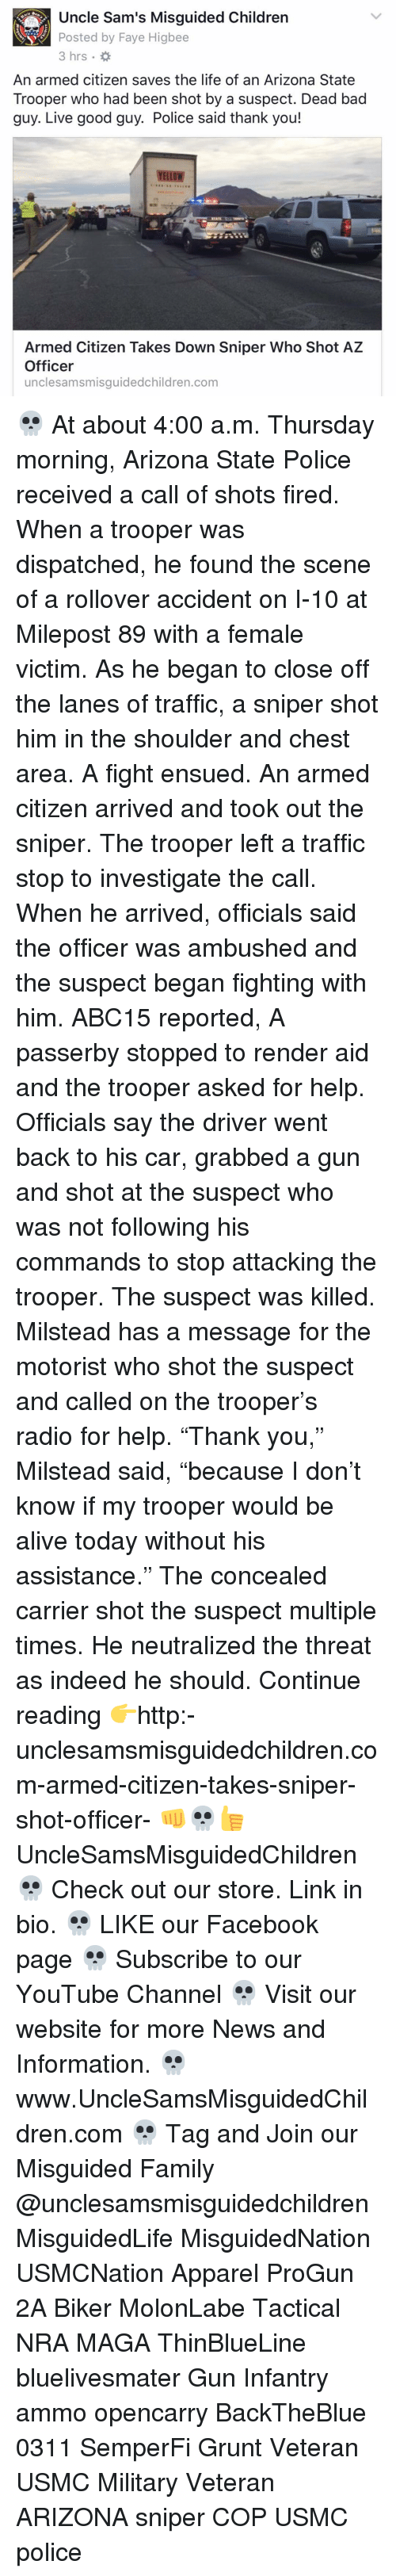 """Memes, Radio, and Traffic: Uncle Sam's Misguided Children  Posted by Faye Higbee  3 hrs.  An armed citizen saves the life of an Arizona State  Trooper who had been shot by a suspect. Dead bad  guy. Live good guy. Police said thank you!  YELLOW  Armed Citizen Takes Down Sniper Who Shot AZ  Officer  unclesamsmisguidedchildren.com 💀 At about 4:00 a.m. Thursday morning, Arizona State Police received a call of shots fired. When a trooper was dispatched, he found the scene of a rollover accident on I-10 at Milepost 89 with a female victim. As he began to close off the lanes of traffic, a sniper shot him in the shoulder and chest area. A fight ensued. An armed citizen arrived and took out the sniper. The trooper left a traffic stop to investigate the call. When he arrived, officials said the officer was ambushed and the suspect began fighting with him. ABC15 reported, A passerby stopped to render aid and the trooper asked for help. Officials say the driver went back to his car, grabbed a gun and shot at the suspect who was not following his commands to stop attacking the trooper. The suspect was killed. Milstead has a message for the motorist who shot the suspect and called on the trooper's radio for help. """"Thank you,"""" Milstead said, """"because I don't know if my trooper would be alive today without his assistance."""" The concealed carrier shot the suspect multiple times. He neutralized the threat as indeed he should. Continue reading 👉http:-unclesamsmisguidedchildren.com-armed-citizen-takes-sniper-shot-officer- 👊💀👍 UncleSamsMisguidedChildren 💀 Check out our store. Link in bio. 💀 LIKE our Facebook page 💀 Subscribe to our YouTube Channel 💀 Visit our website for more News and Information. 💀 www.UncleSamsMisguidedChildren.com 💀 Tag and Join our Misguided Family @unclesamsmisguidedchildren MisguidedLife MisguidedNation USMCNation Apparel ProGun 2A Biker MolonLabe Tactical NRA MAGA ThinBlueLine bluelivesmater Gun Infantry ammo opencarry BackTheBlue 0311 SemperFi Grunt Veteran USMC """